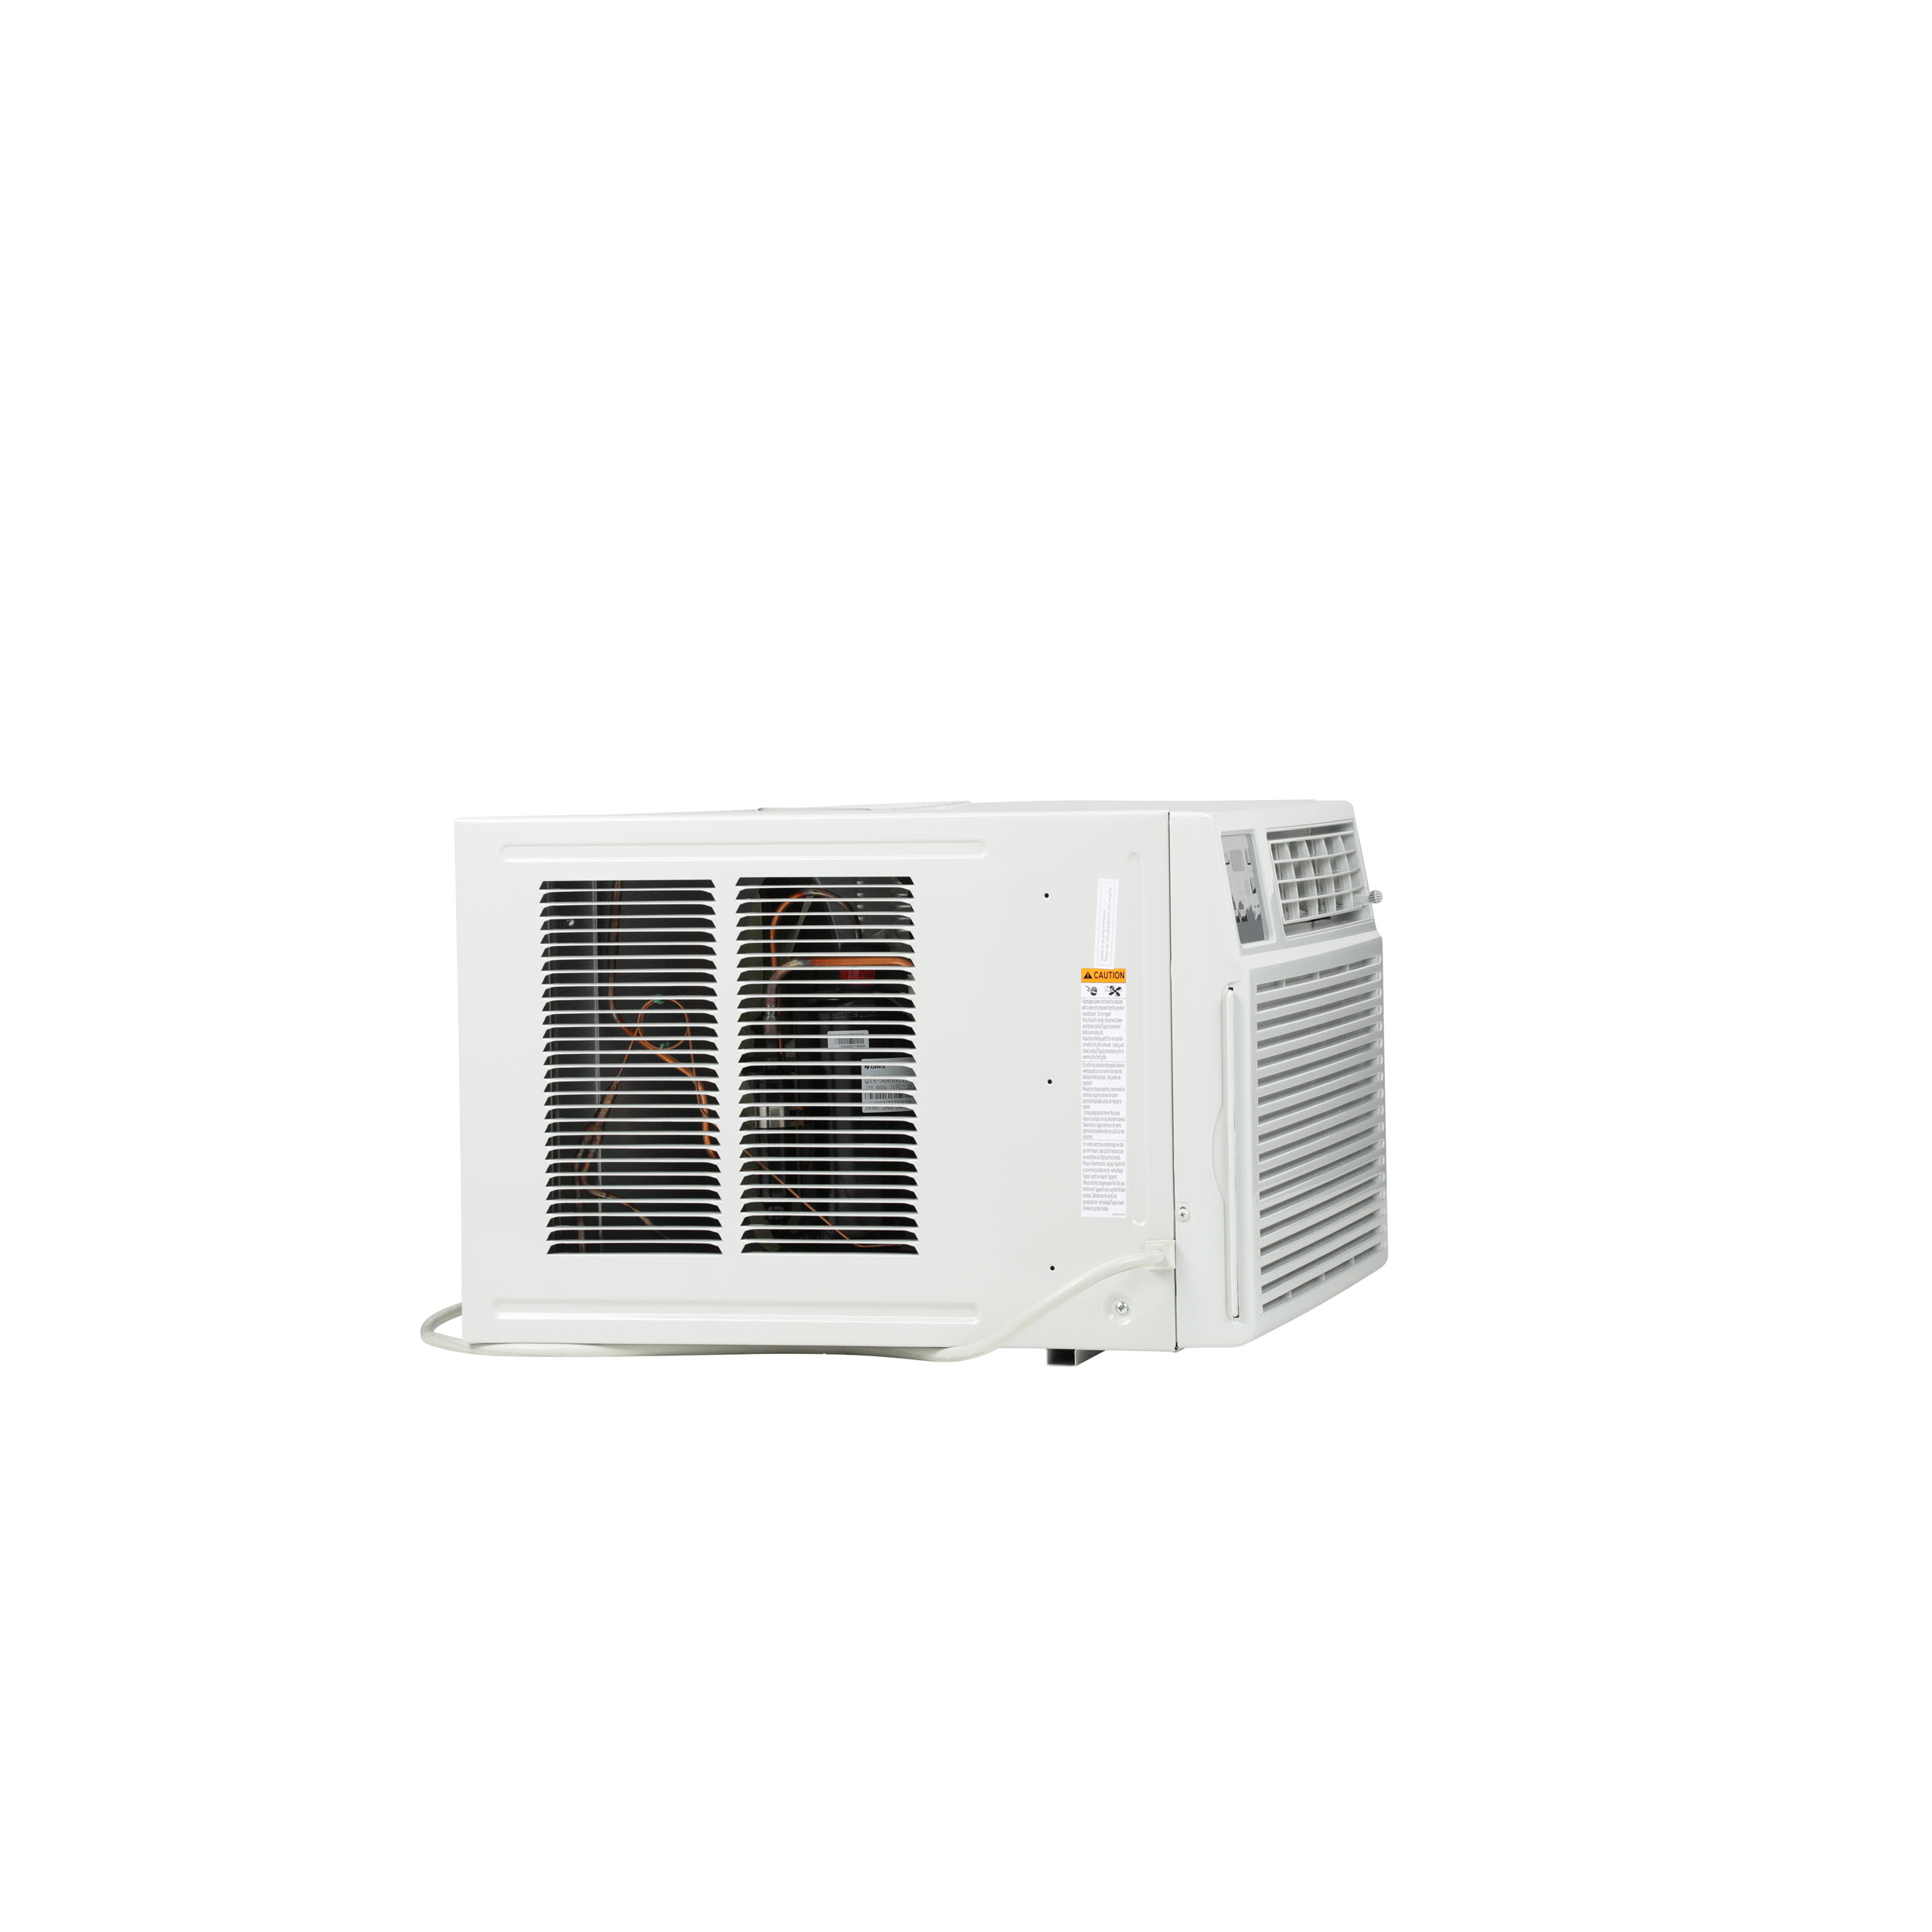 Model: AEE24DT | GE GE® 230 Volt Electronic Heat/Cool Room Air Conditioner